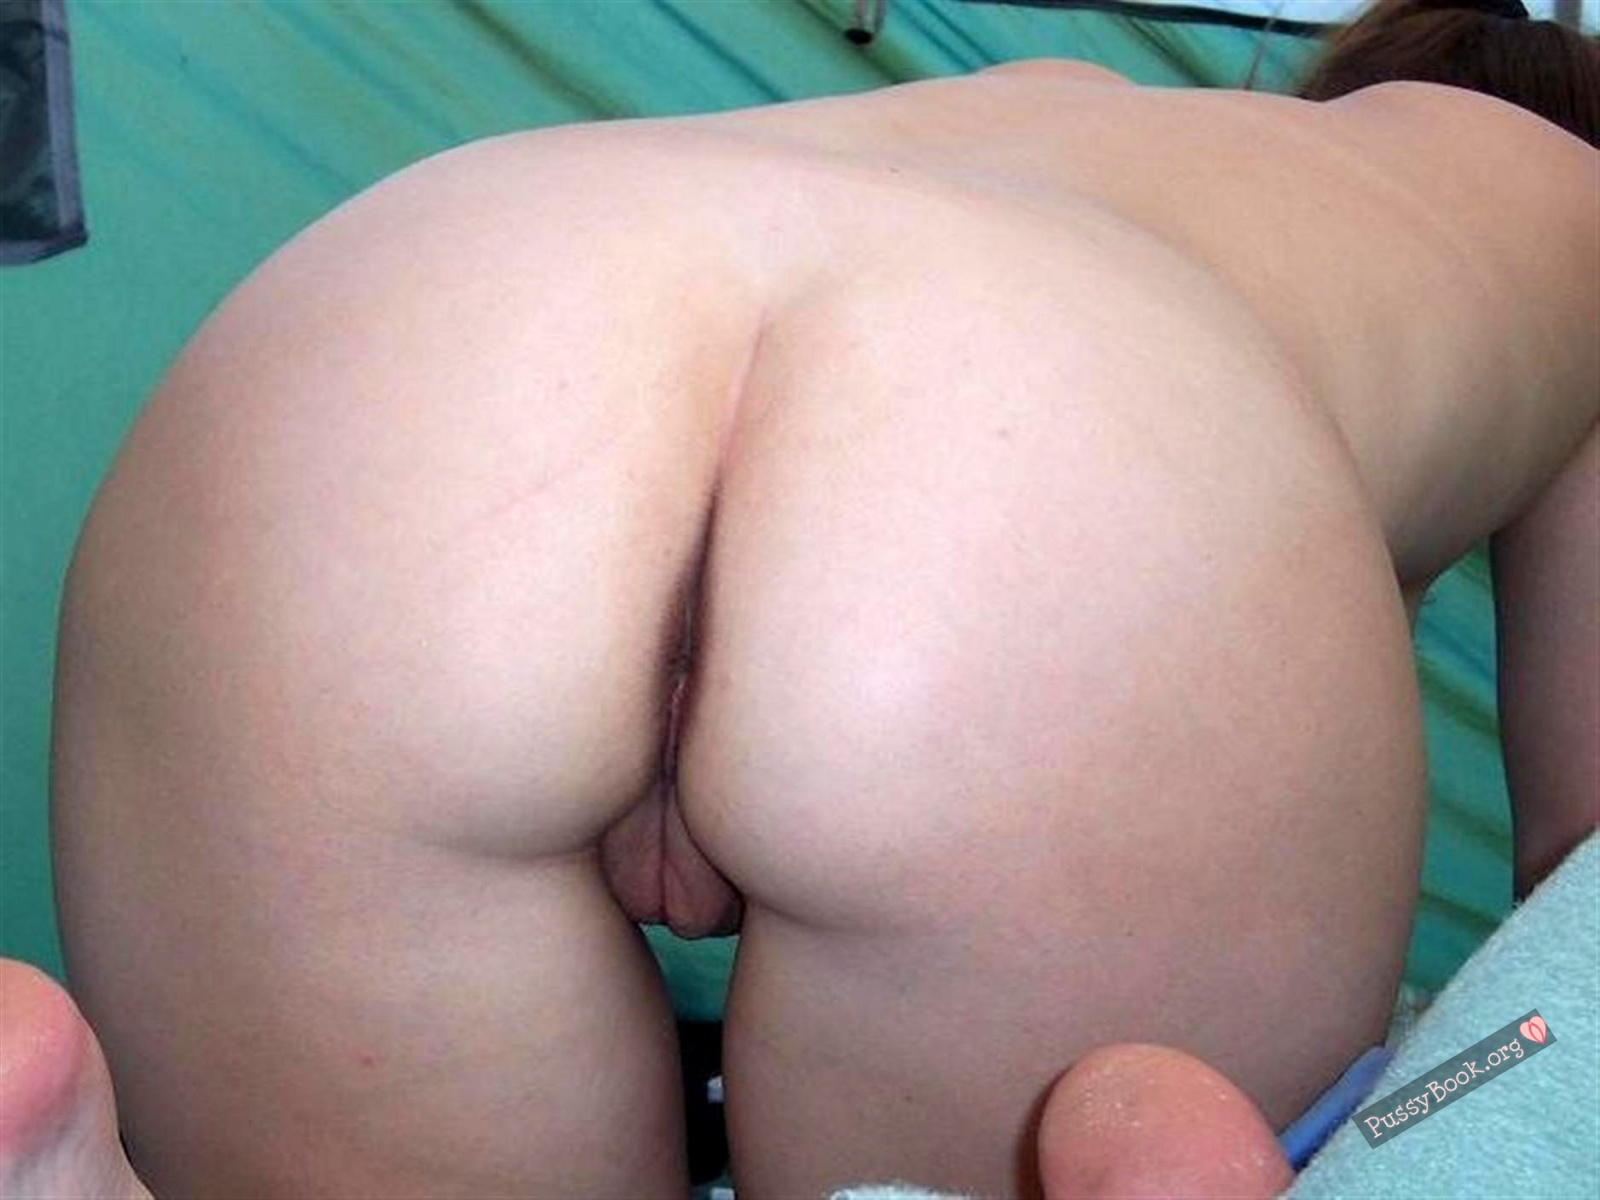 bare-skinned-woman-butt-in-tent